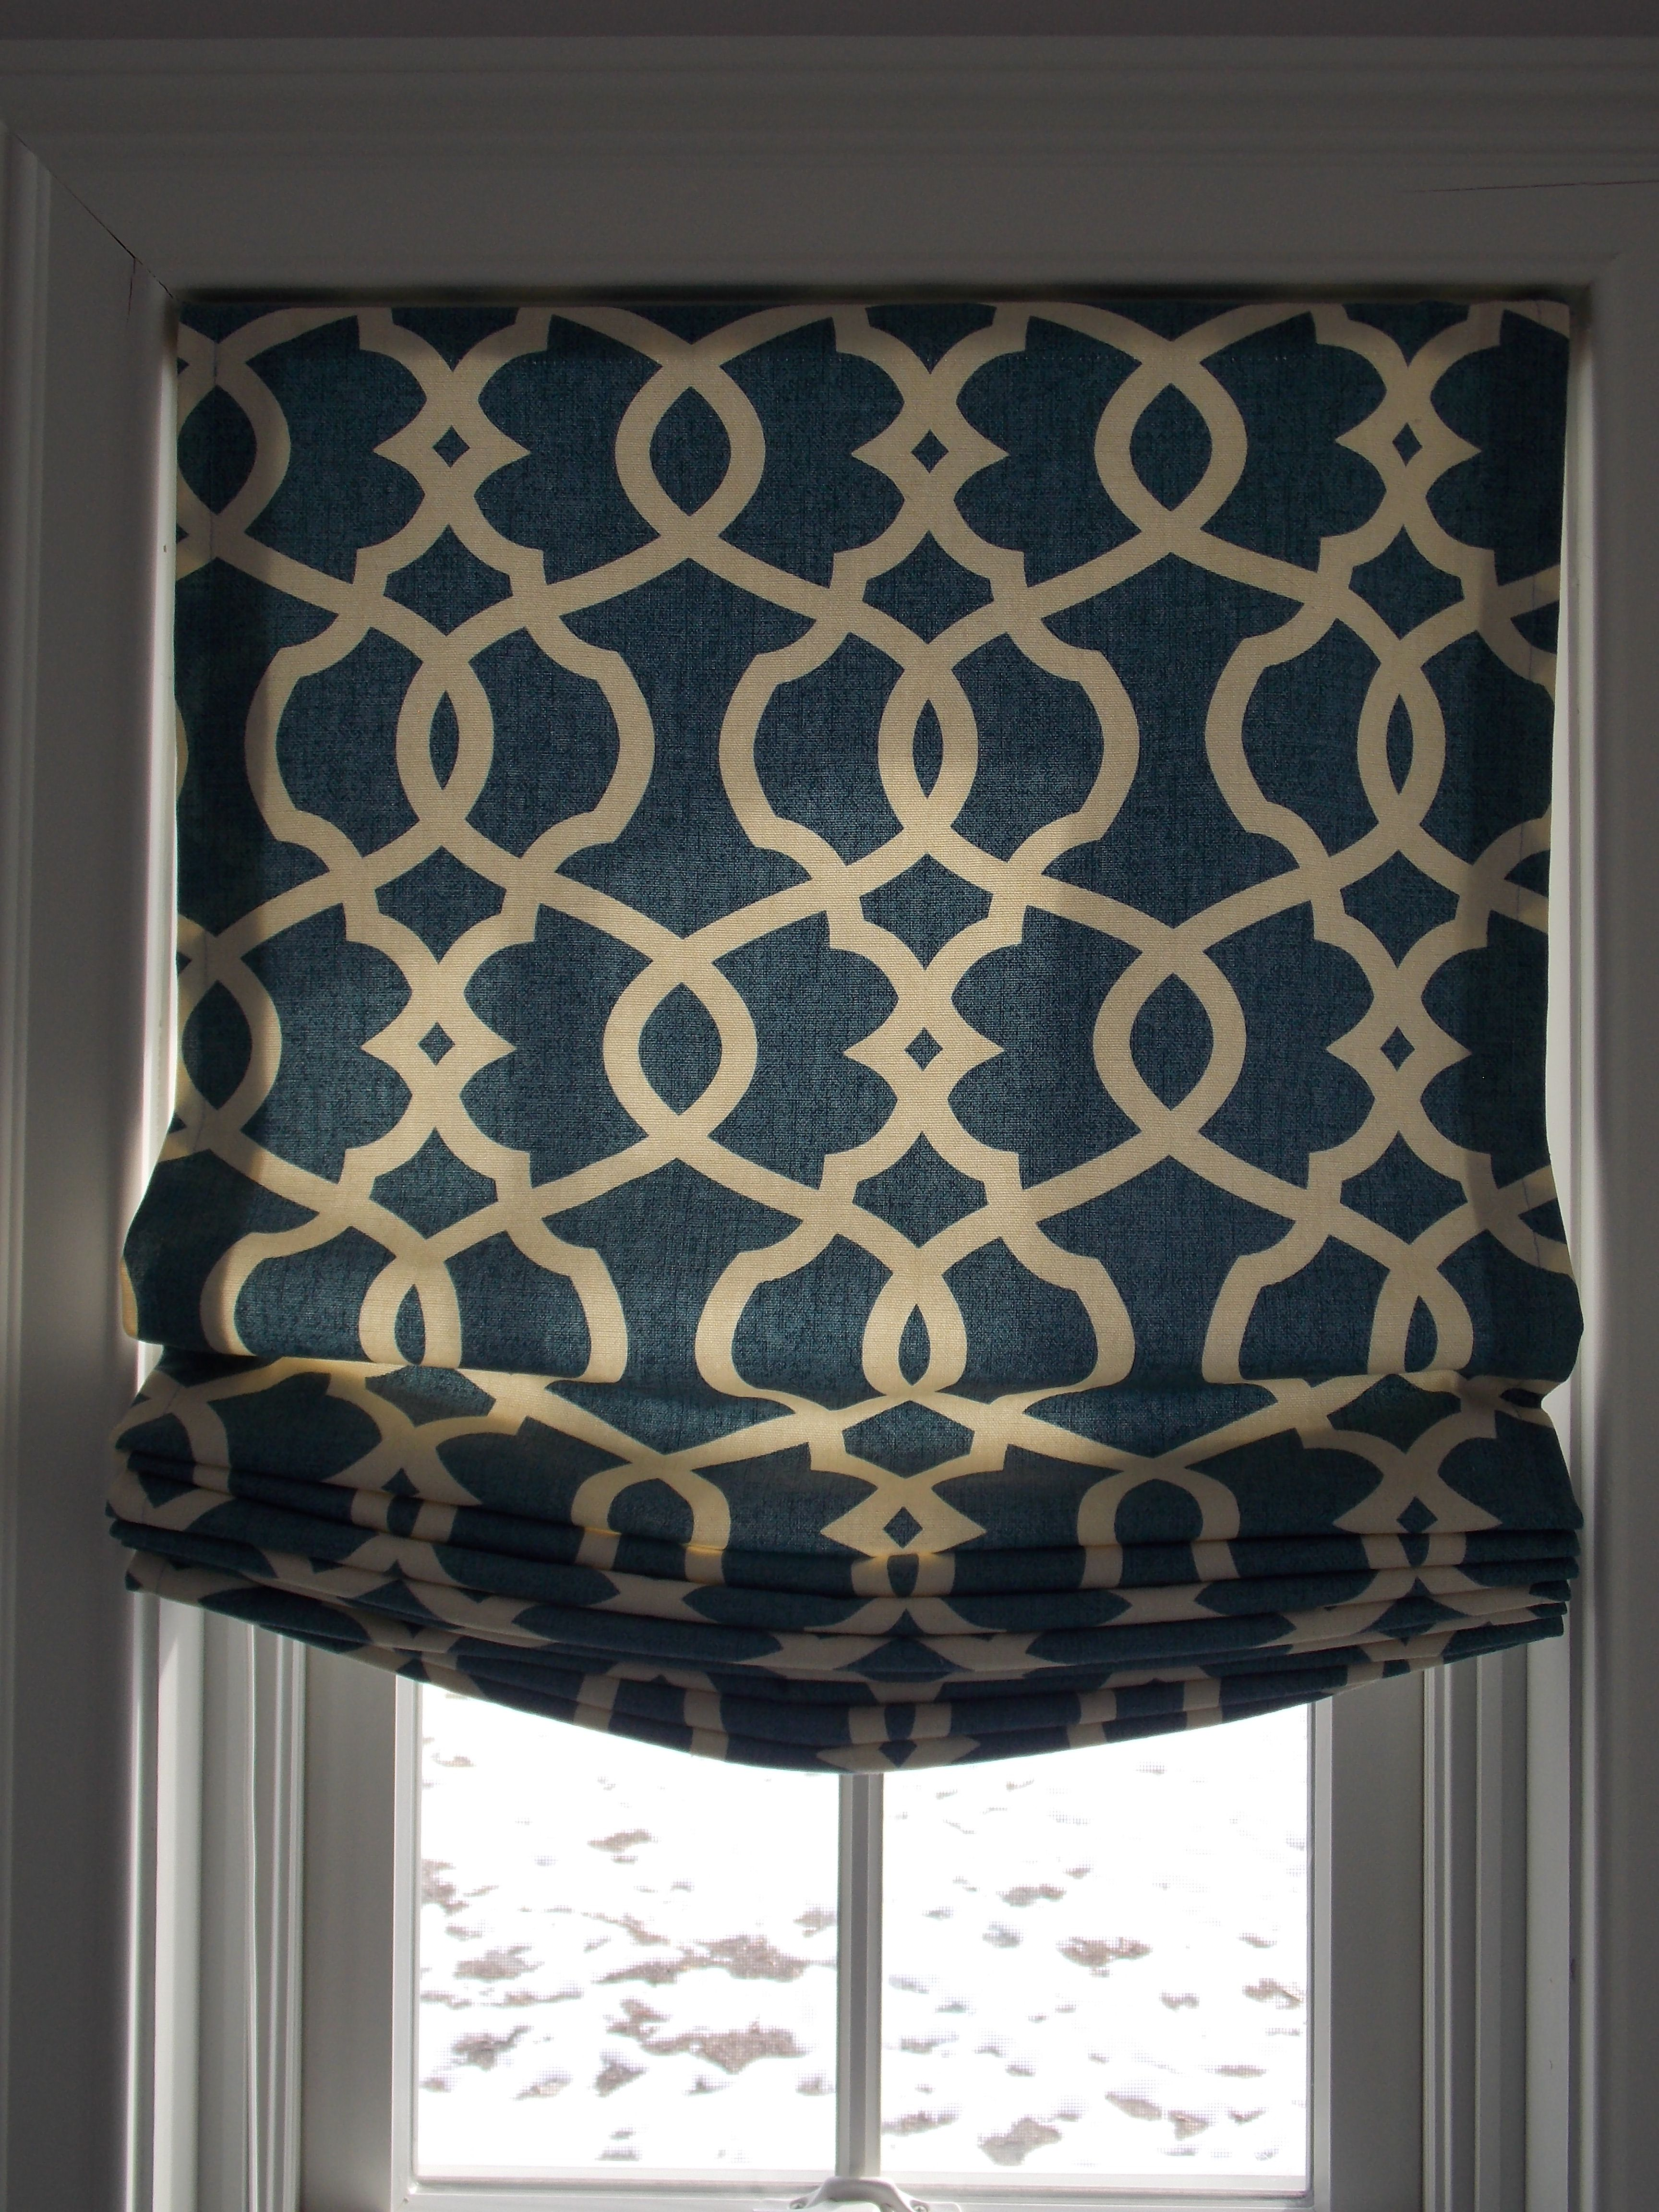 Outside window treatment ideas  made these for mc  window treatment ideas  pinterest  window